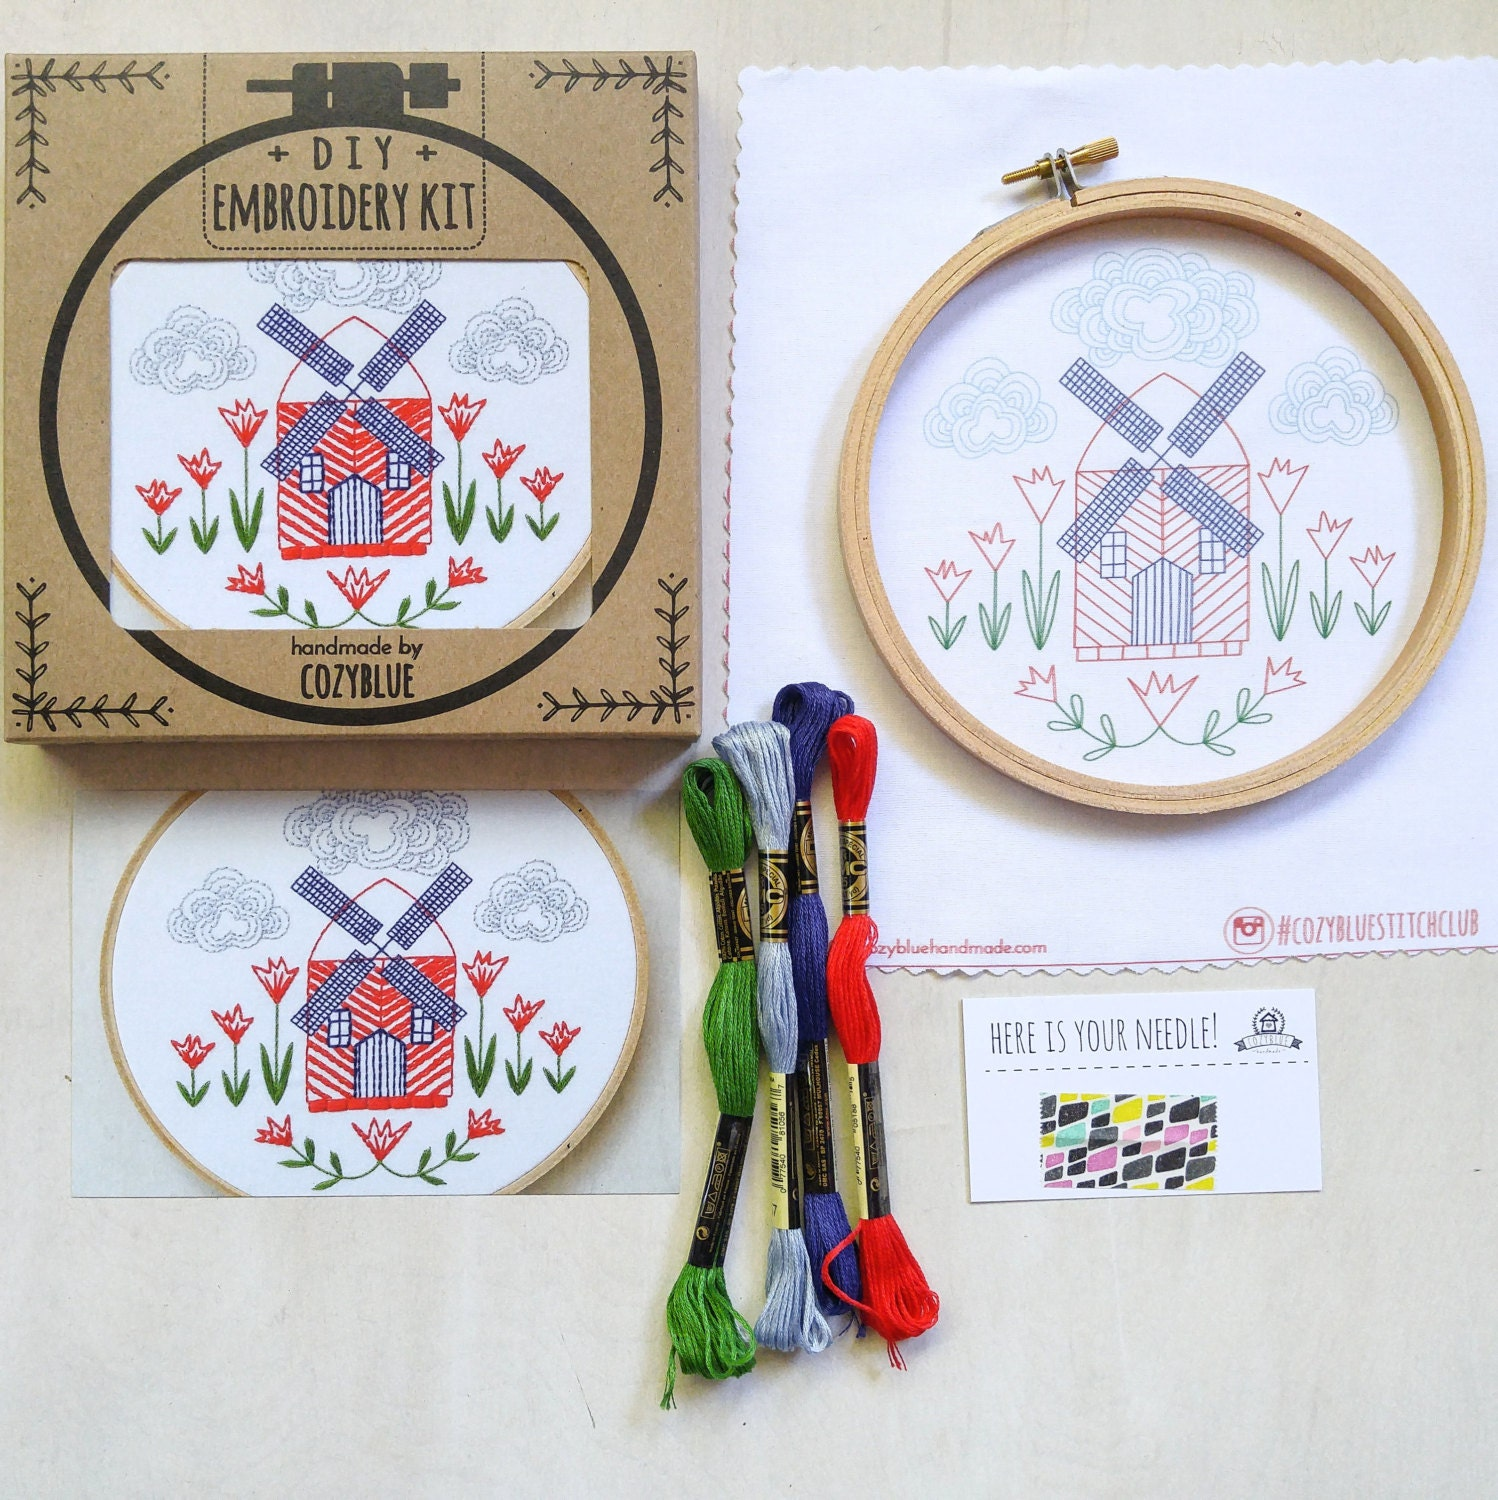 Queen annes lace embroidery kit hoop art diy